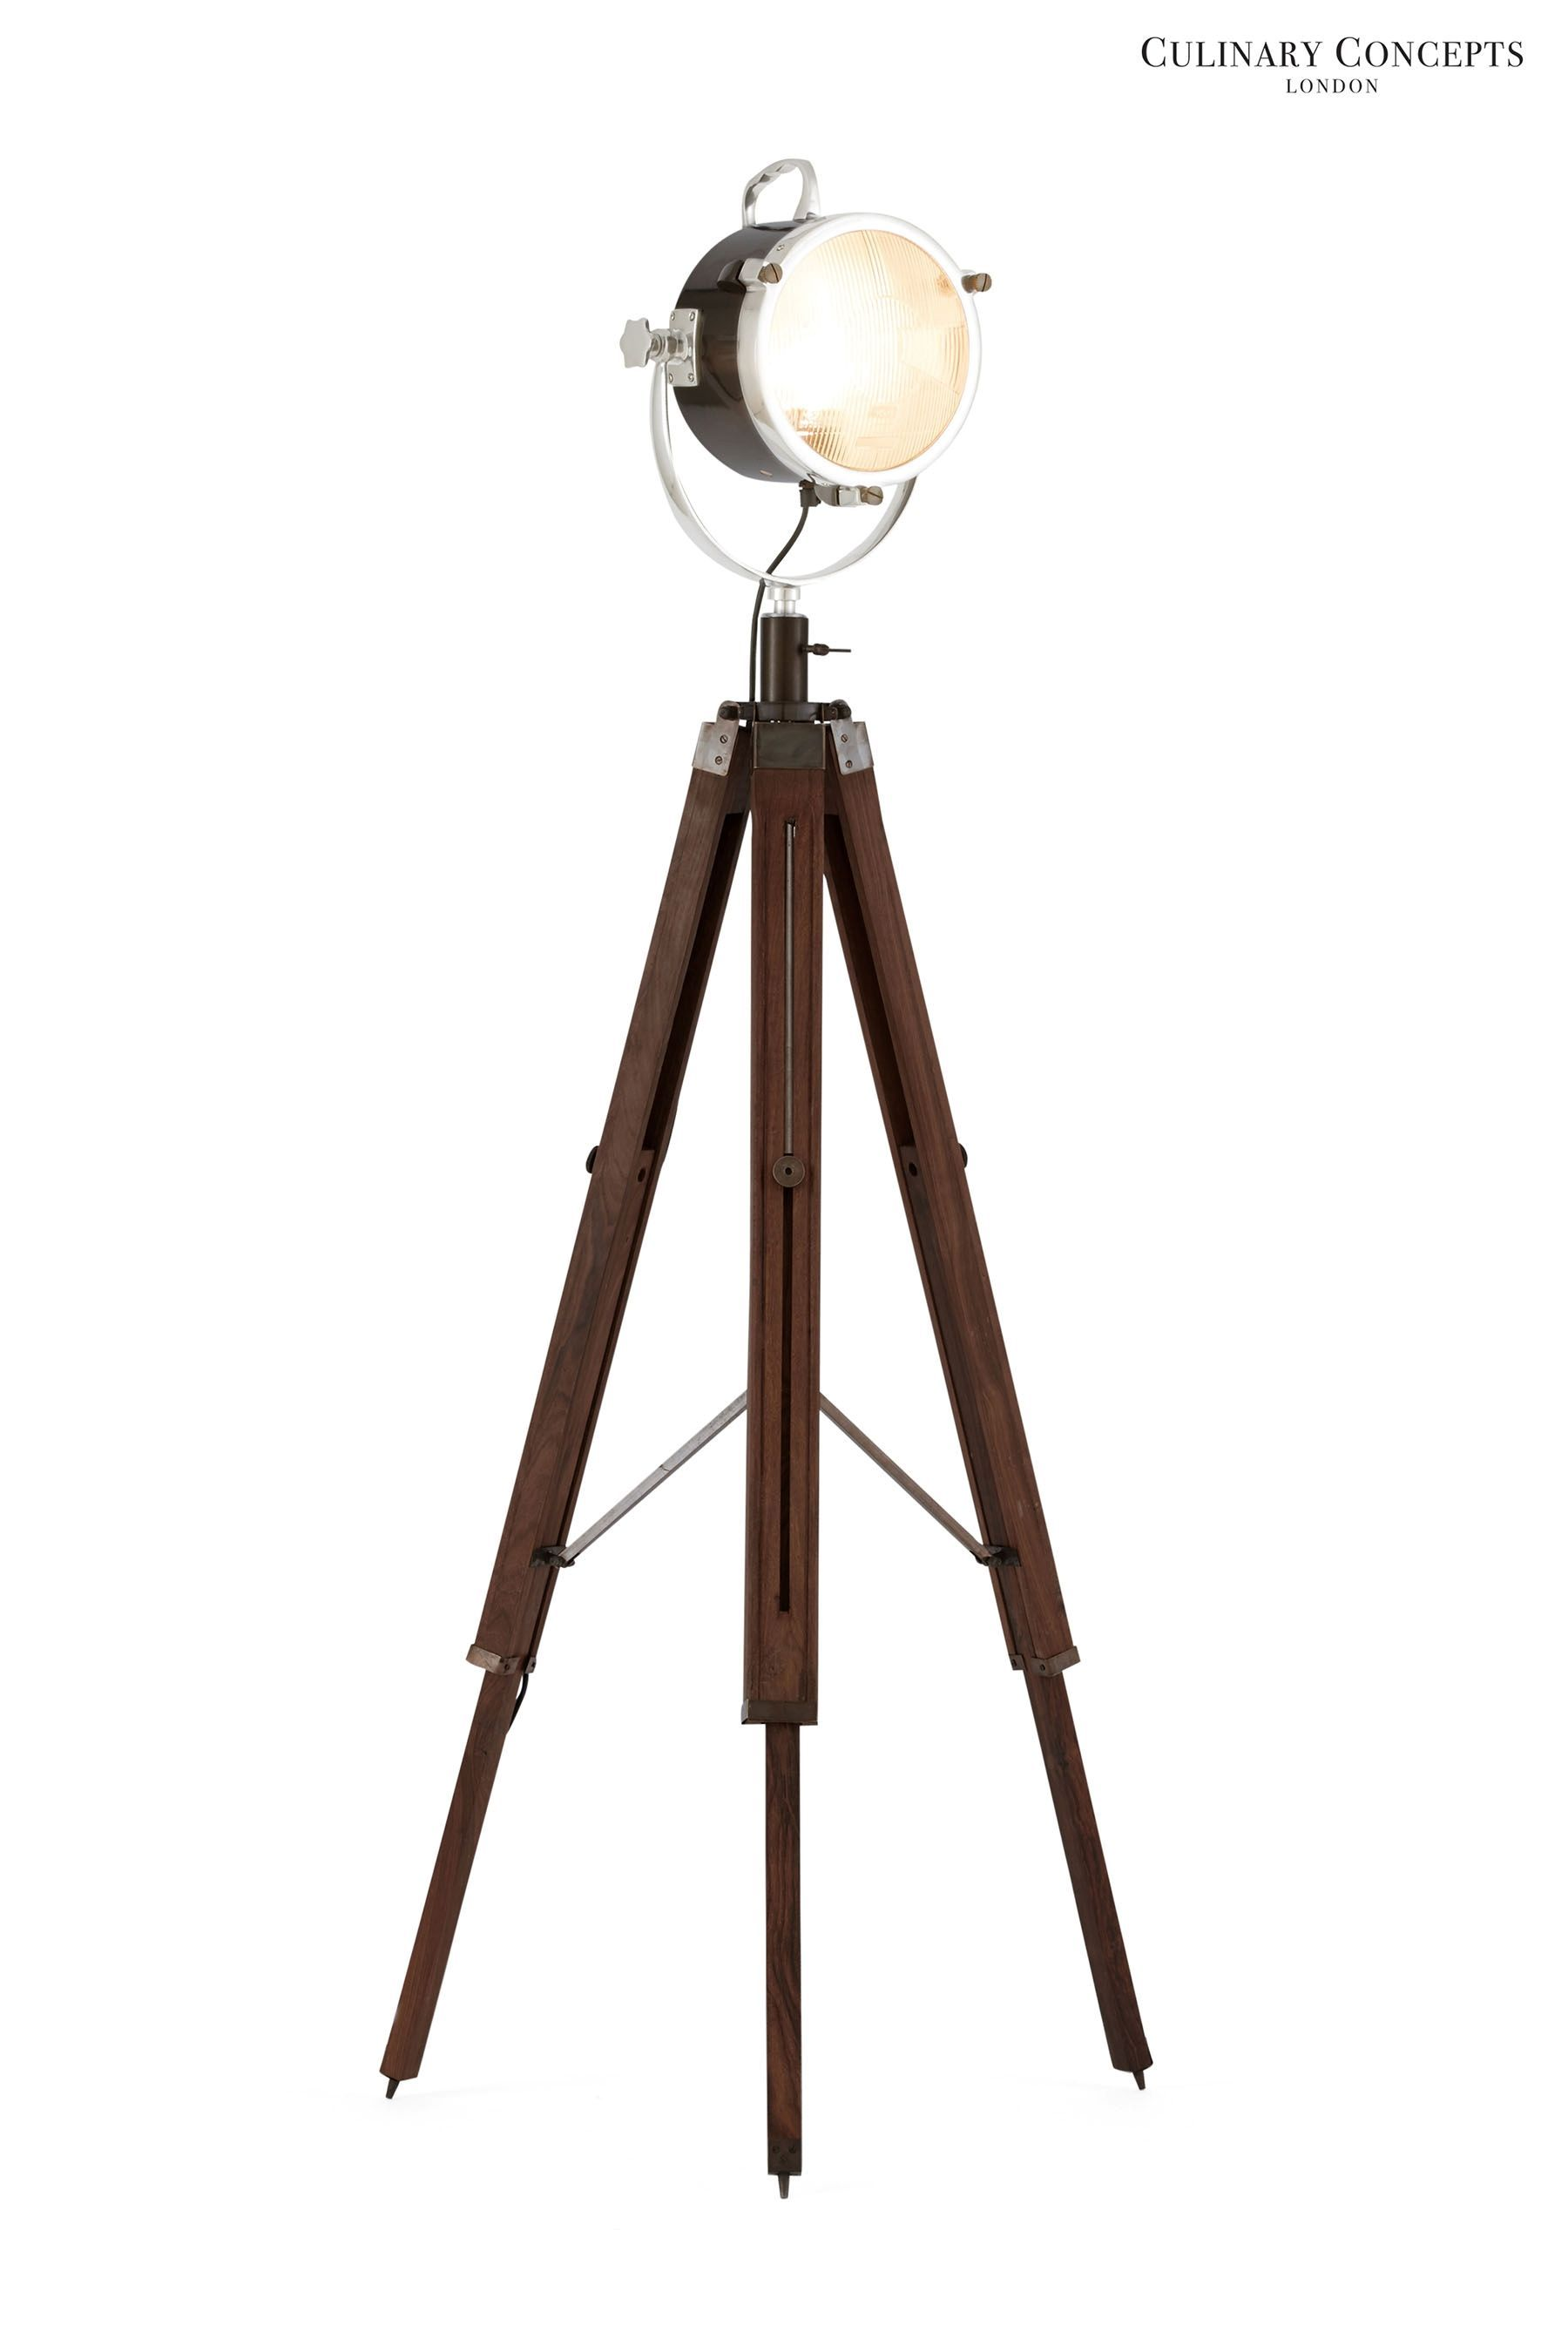 Buy Culinary Concepts Wooden Tripod Spotlight From The